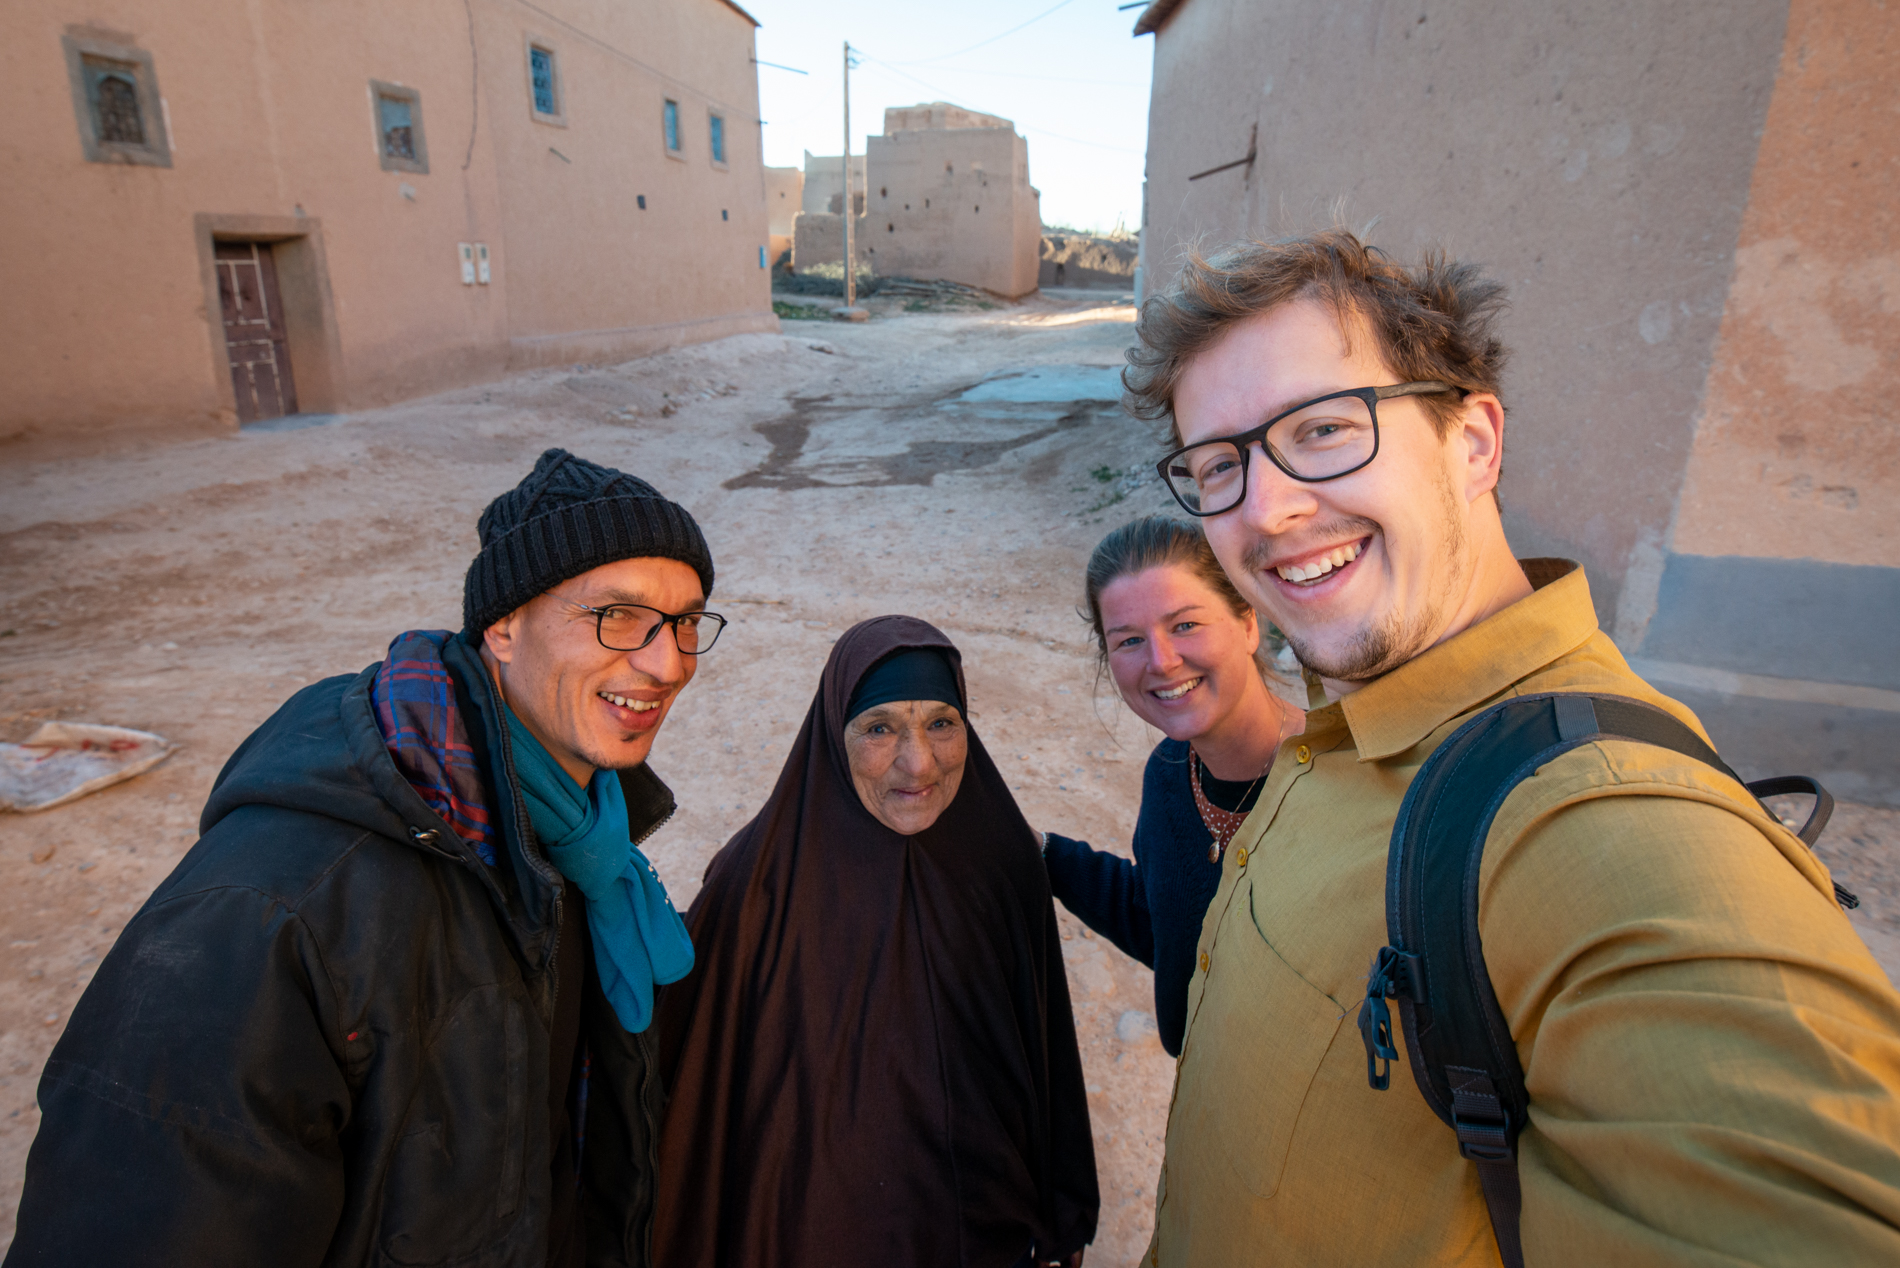 Ellis & me with their hosts in Ait Talb, Morocco.